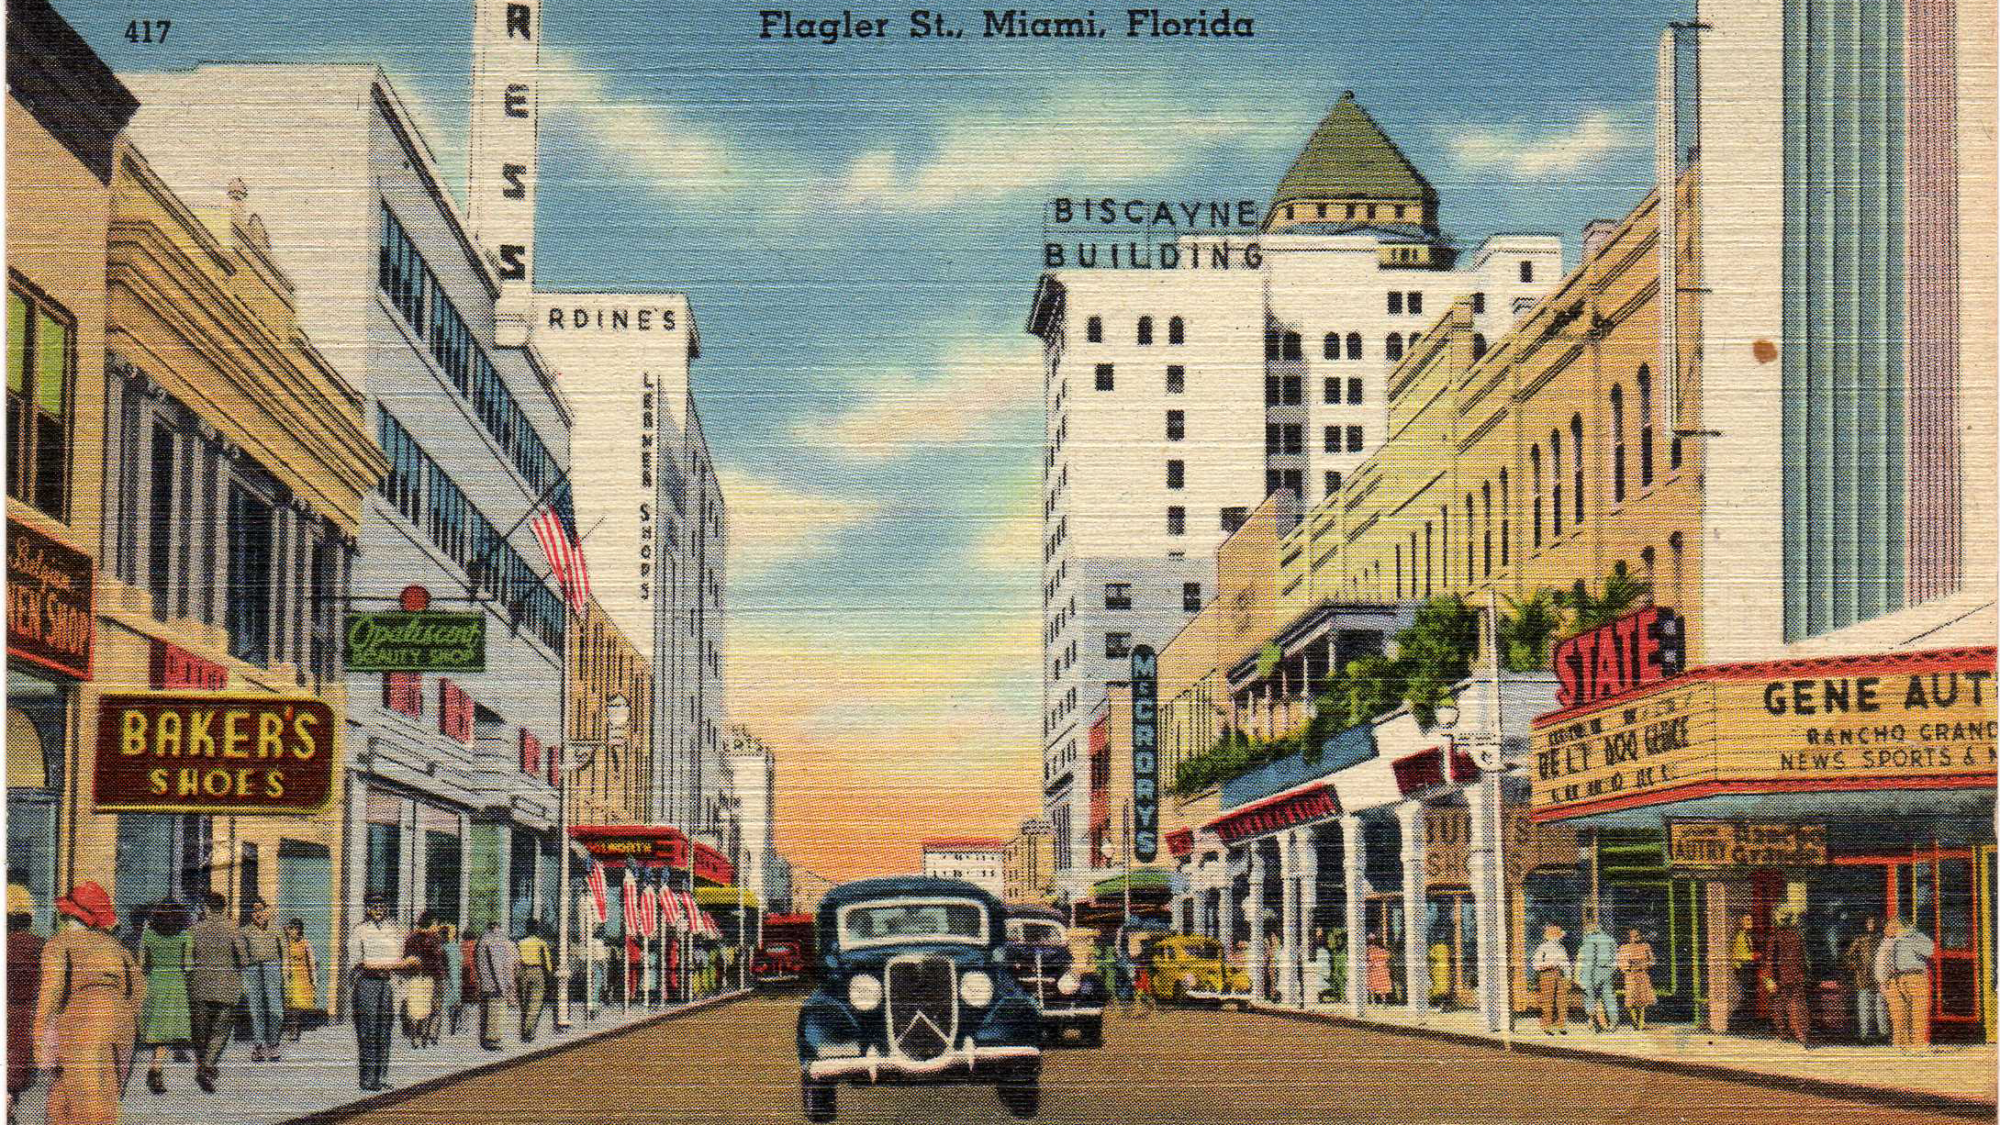 The Man Who Knows Everything About Miami The New Tropic Vintage Florida Flagler Old Florida